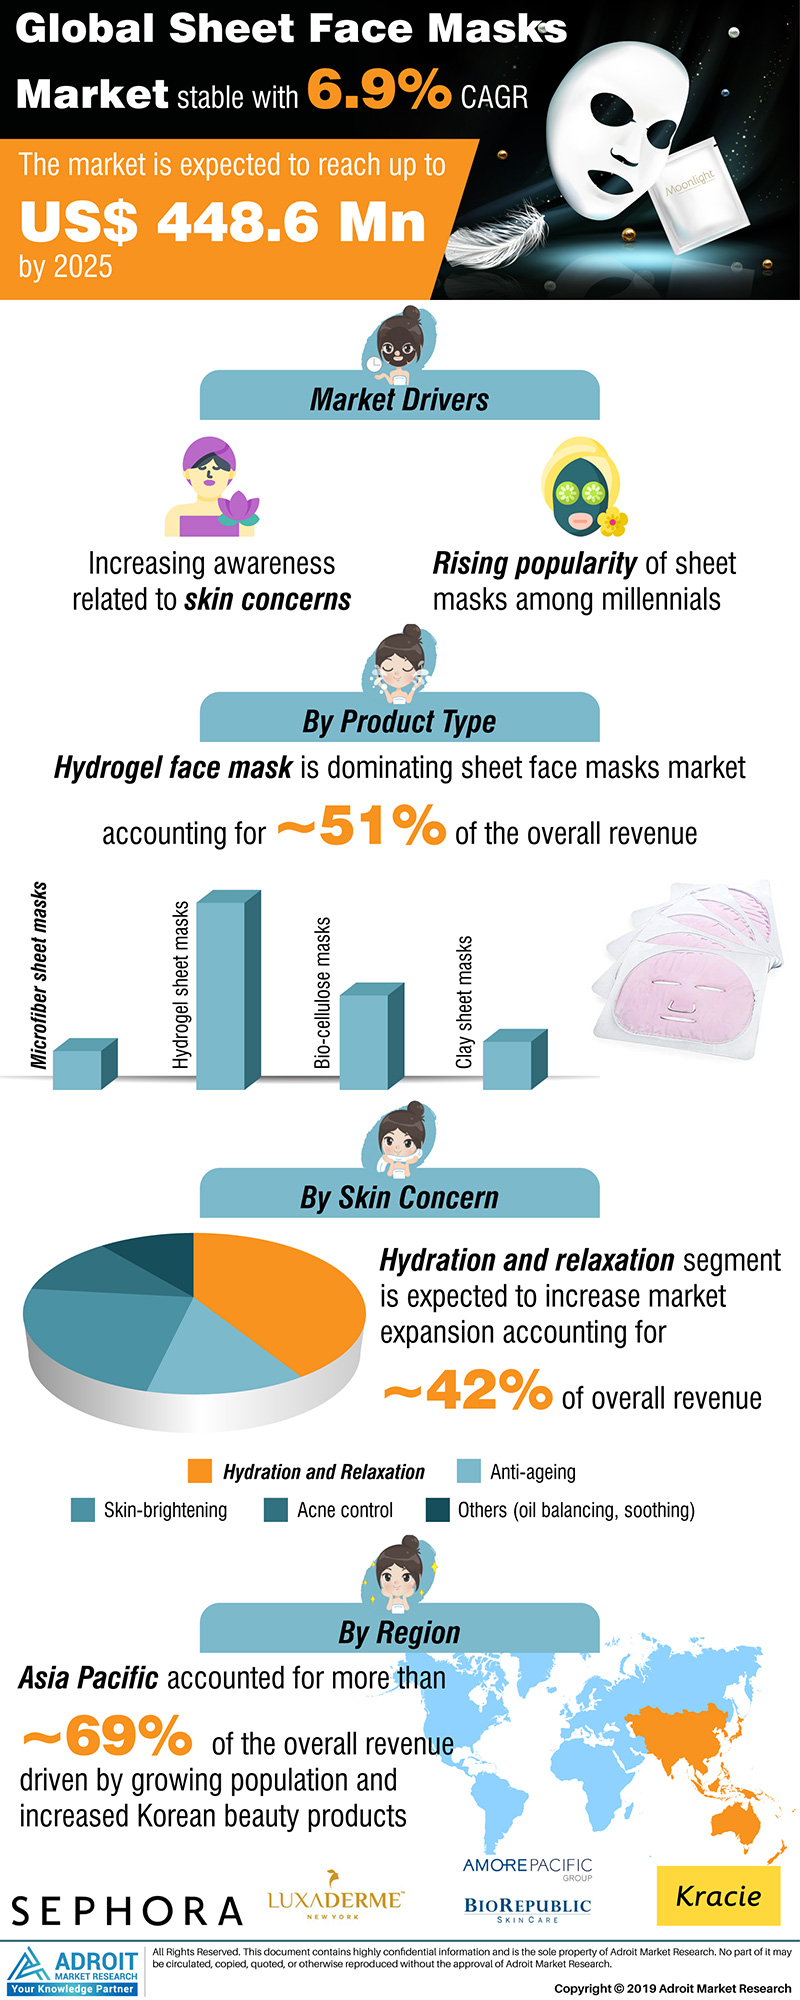 Global Sheet Face Masks Market Size 2017 By Product, Region and Forecast 2019 to 2025